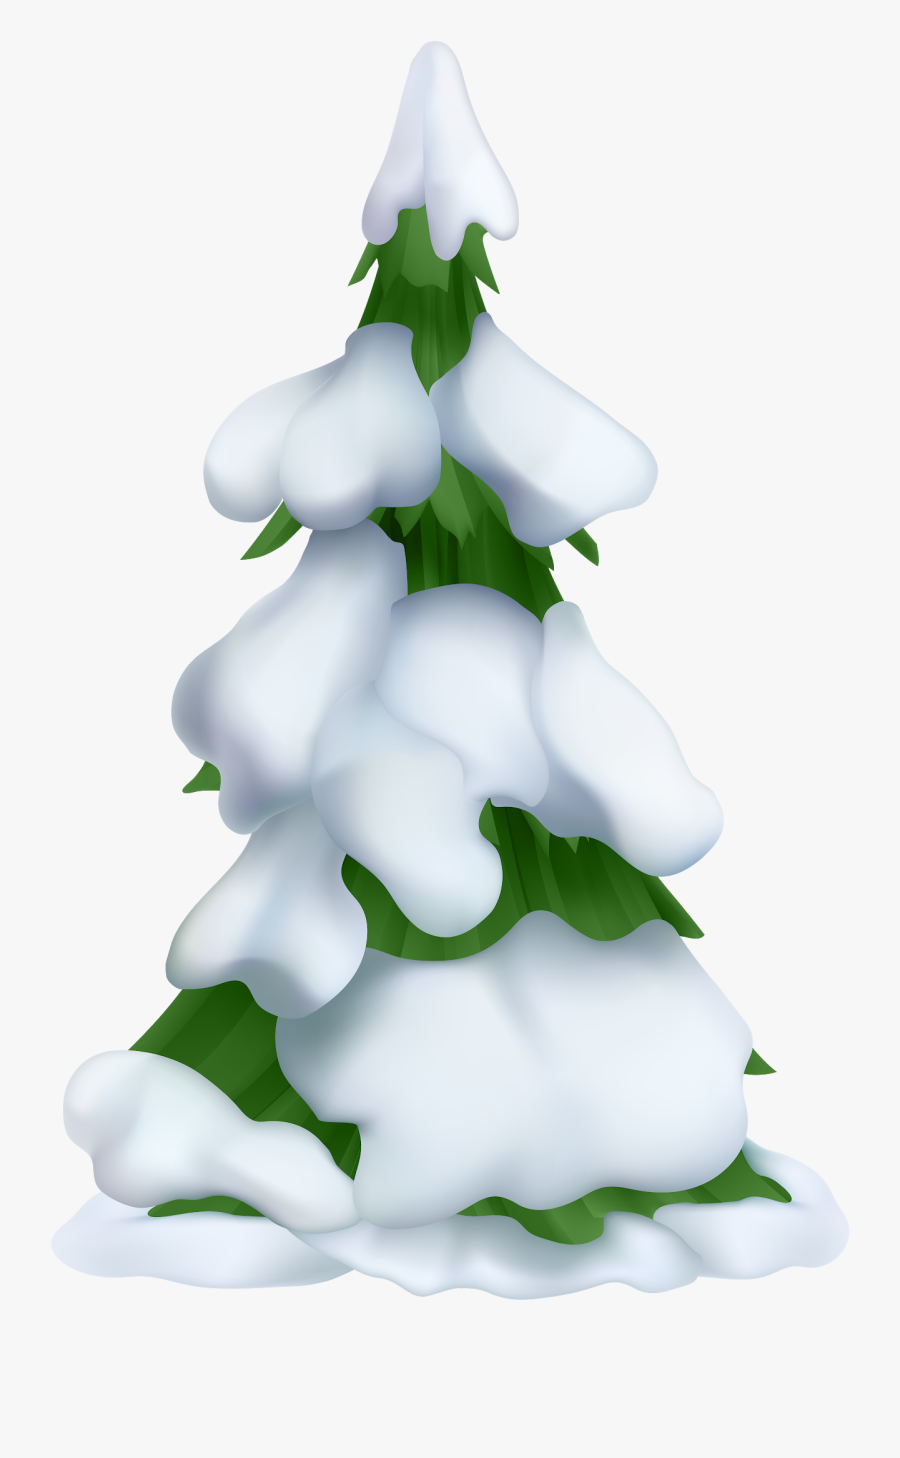 Transparent Tree With Snow Clipart - Snowy Christmas Tree Clipart, Transparent Clipart